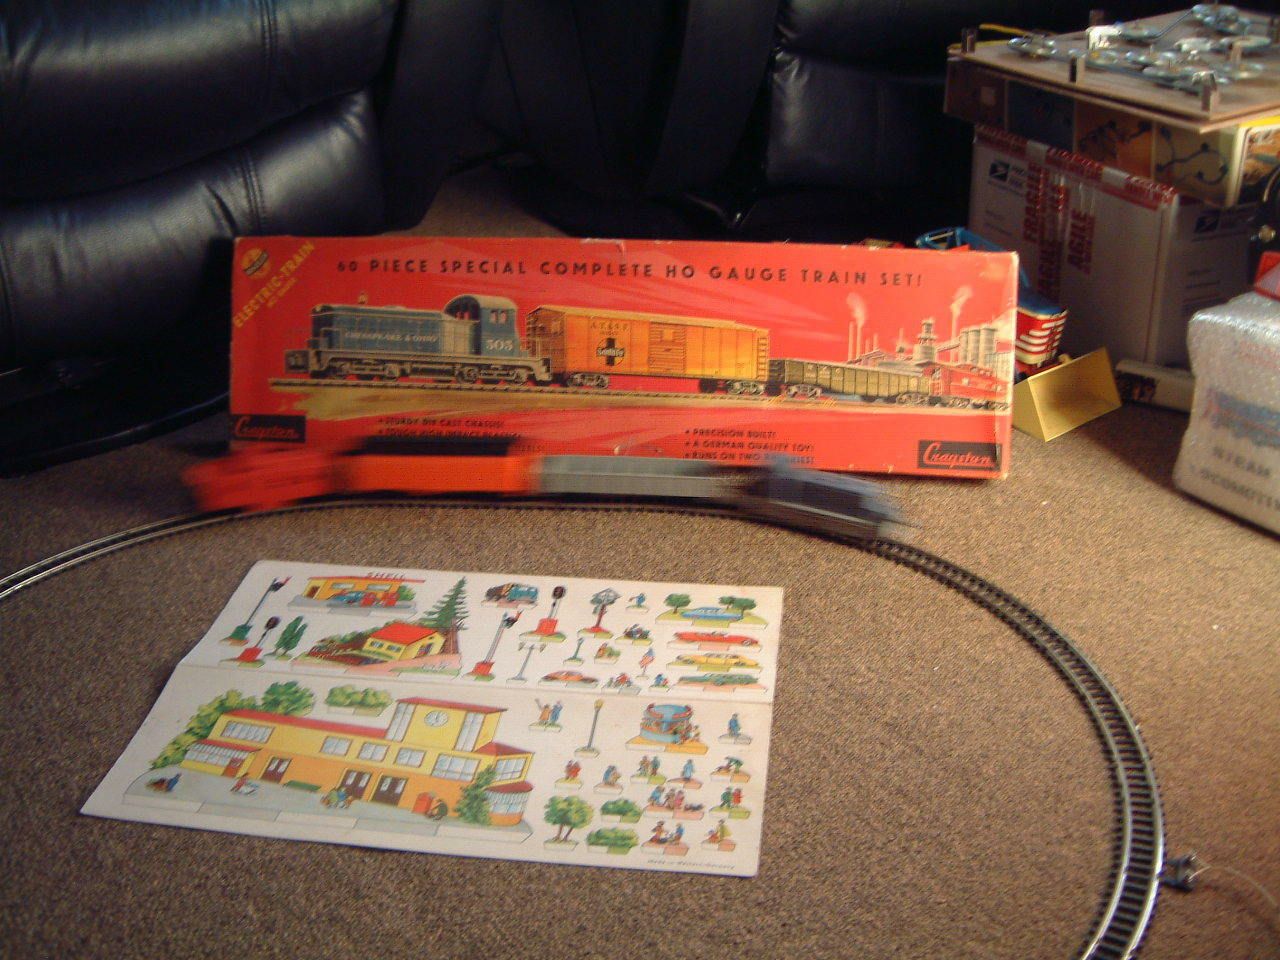 VINTAGE CRAGSTAN B O TRAIN MADE BY DISTLER. COMPLETE WORKS W ALL 60 PIECES & BOX